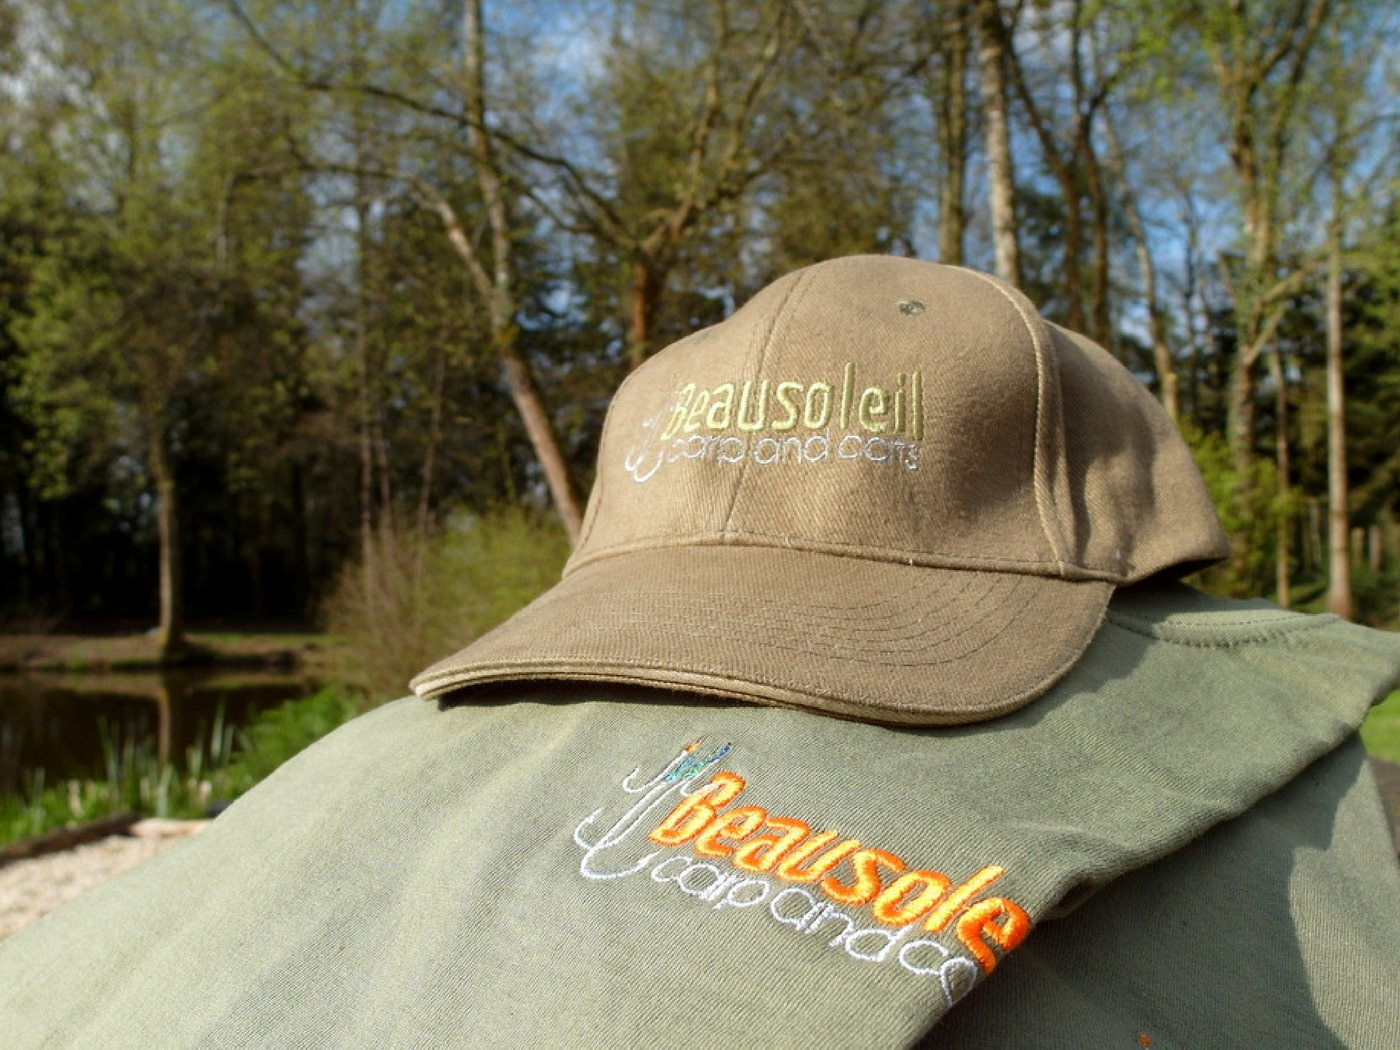 hats-t-shirts-and-hoodies-from-beausoleil